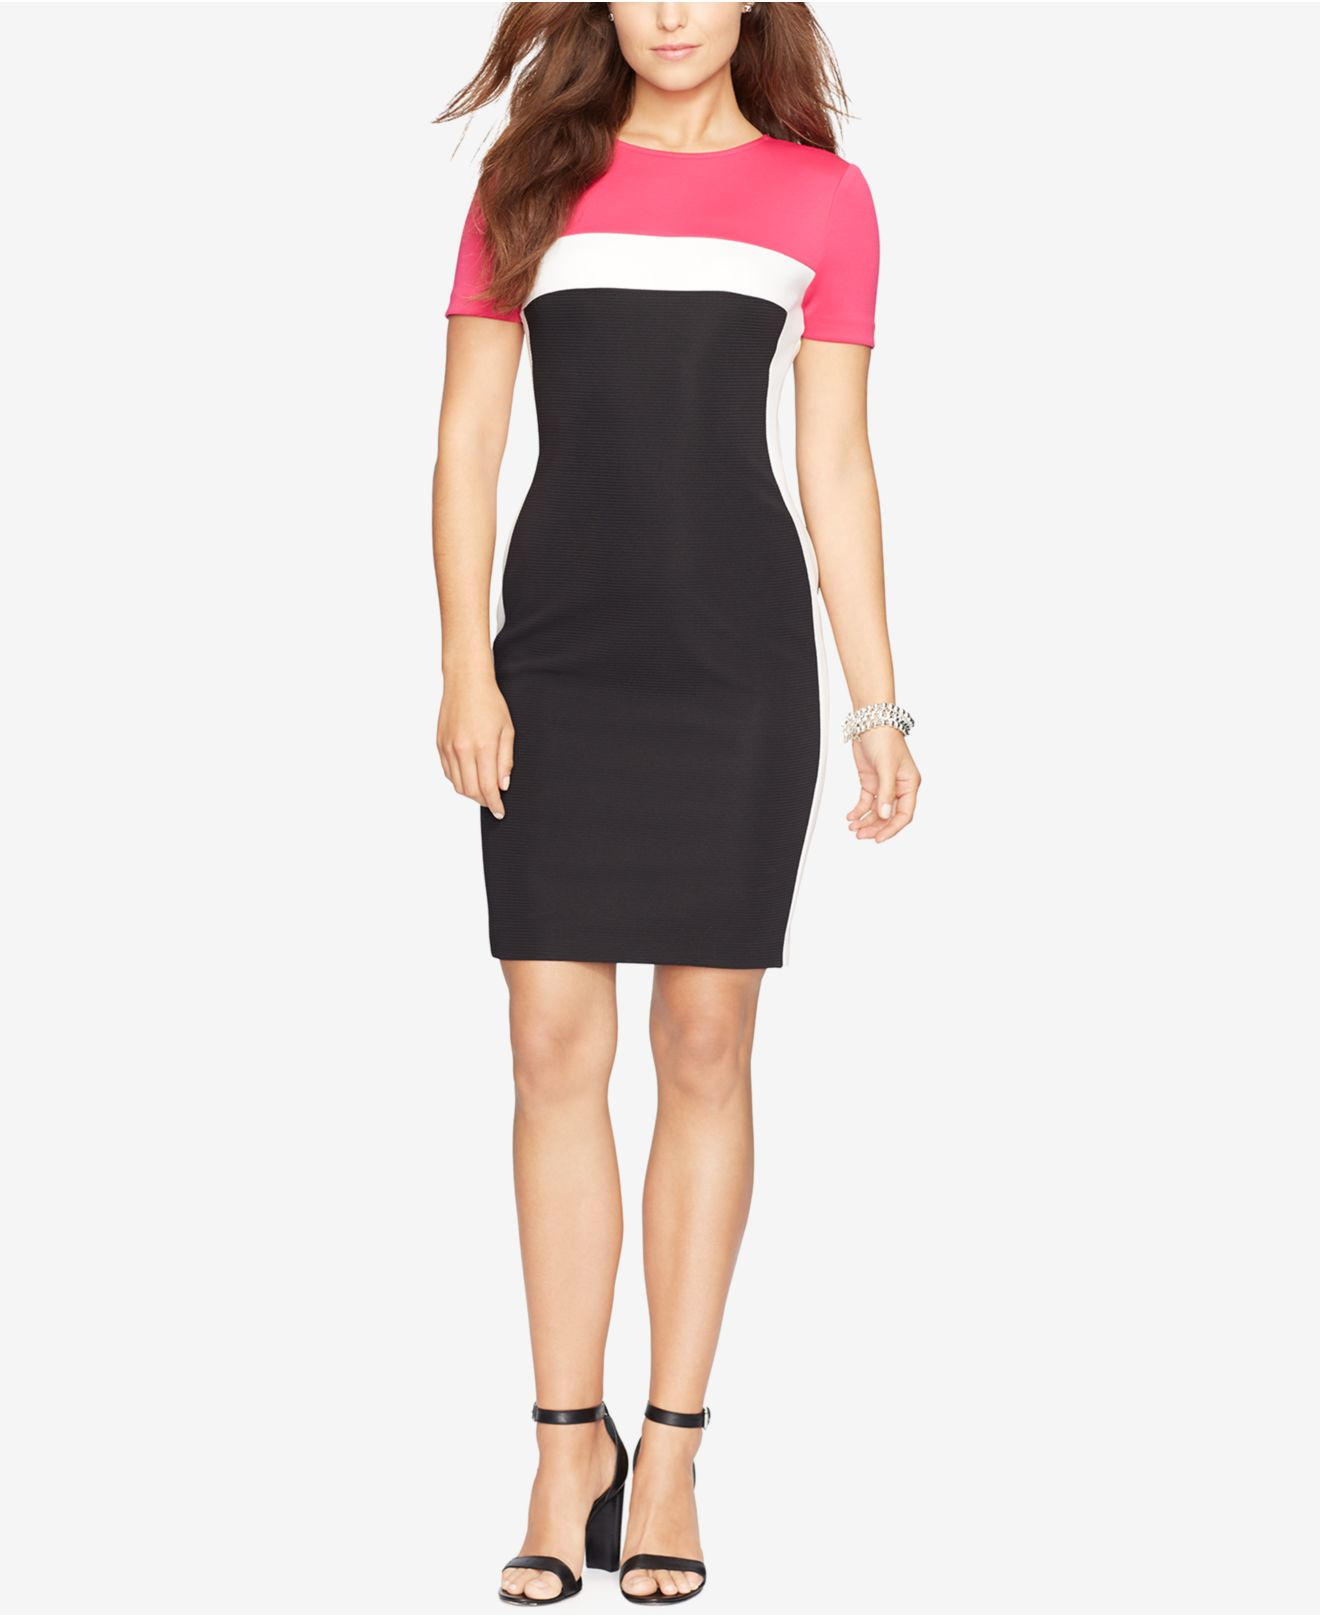 American Living Colorblocked Rib Knit Dress In Pink Lyst